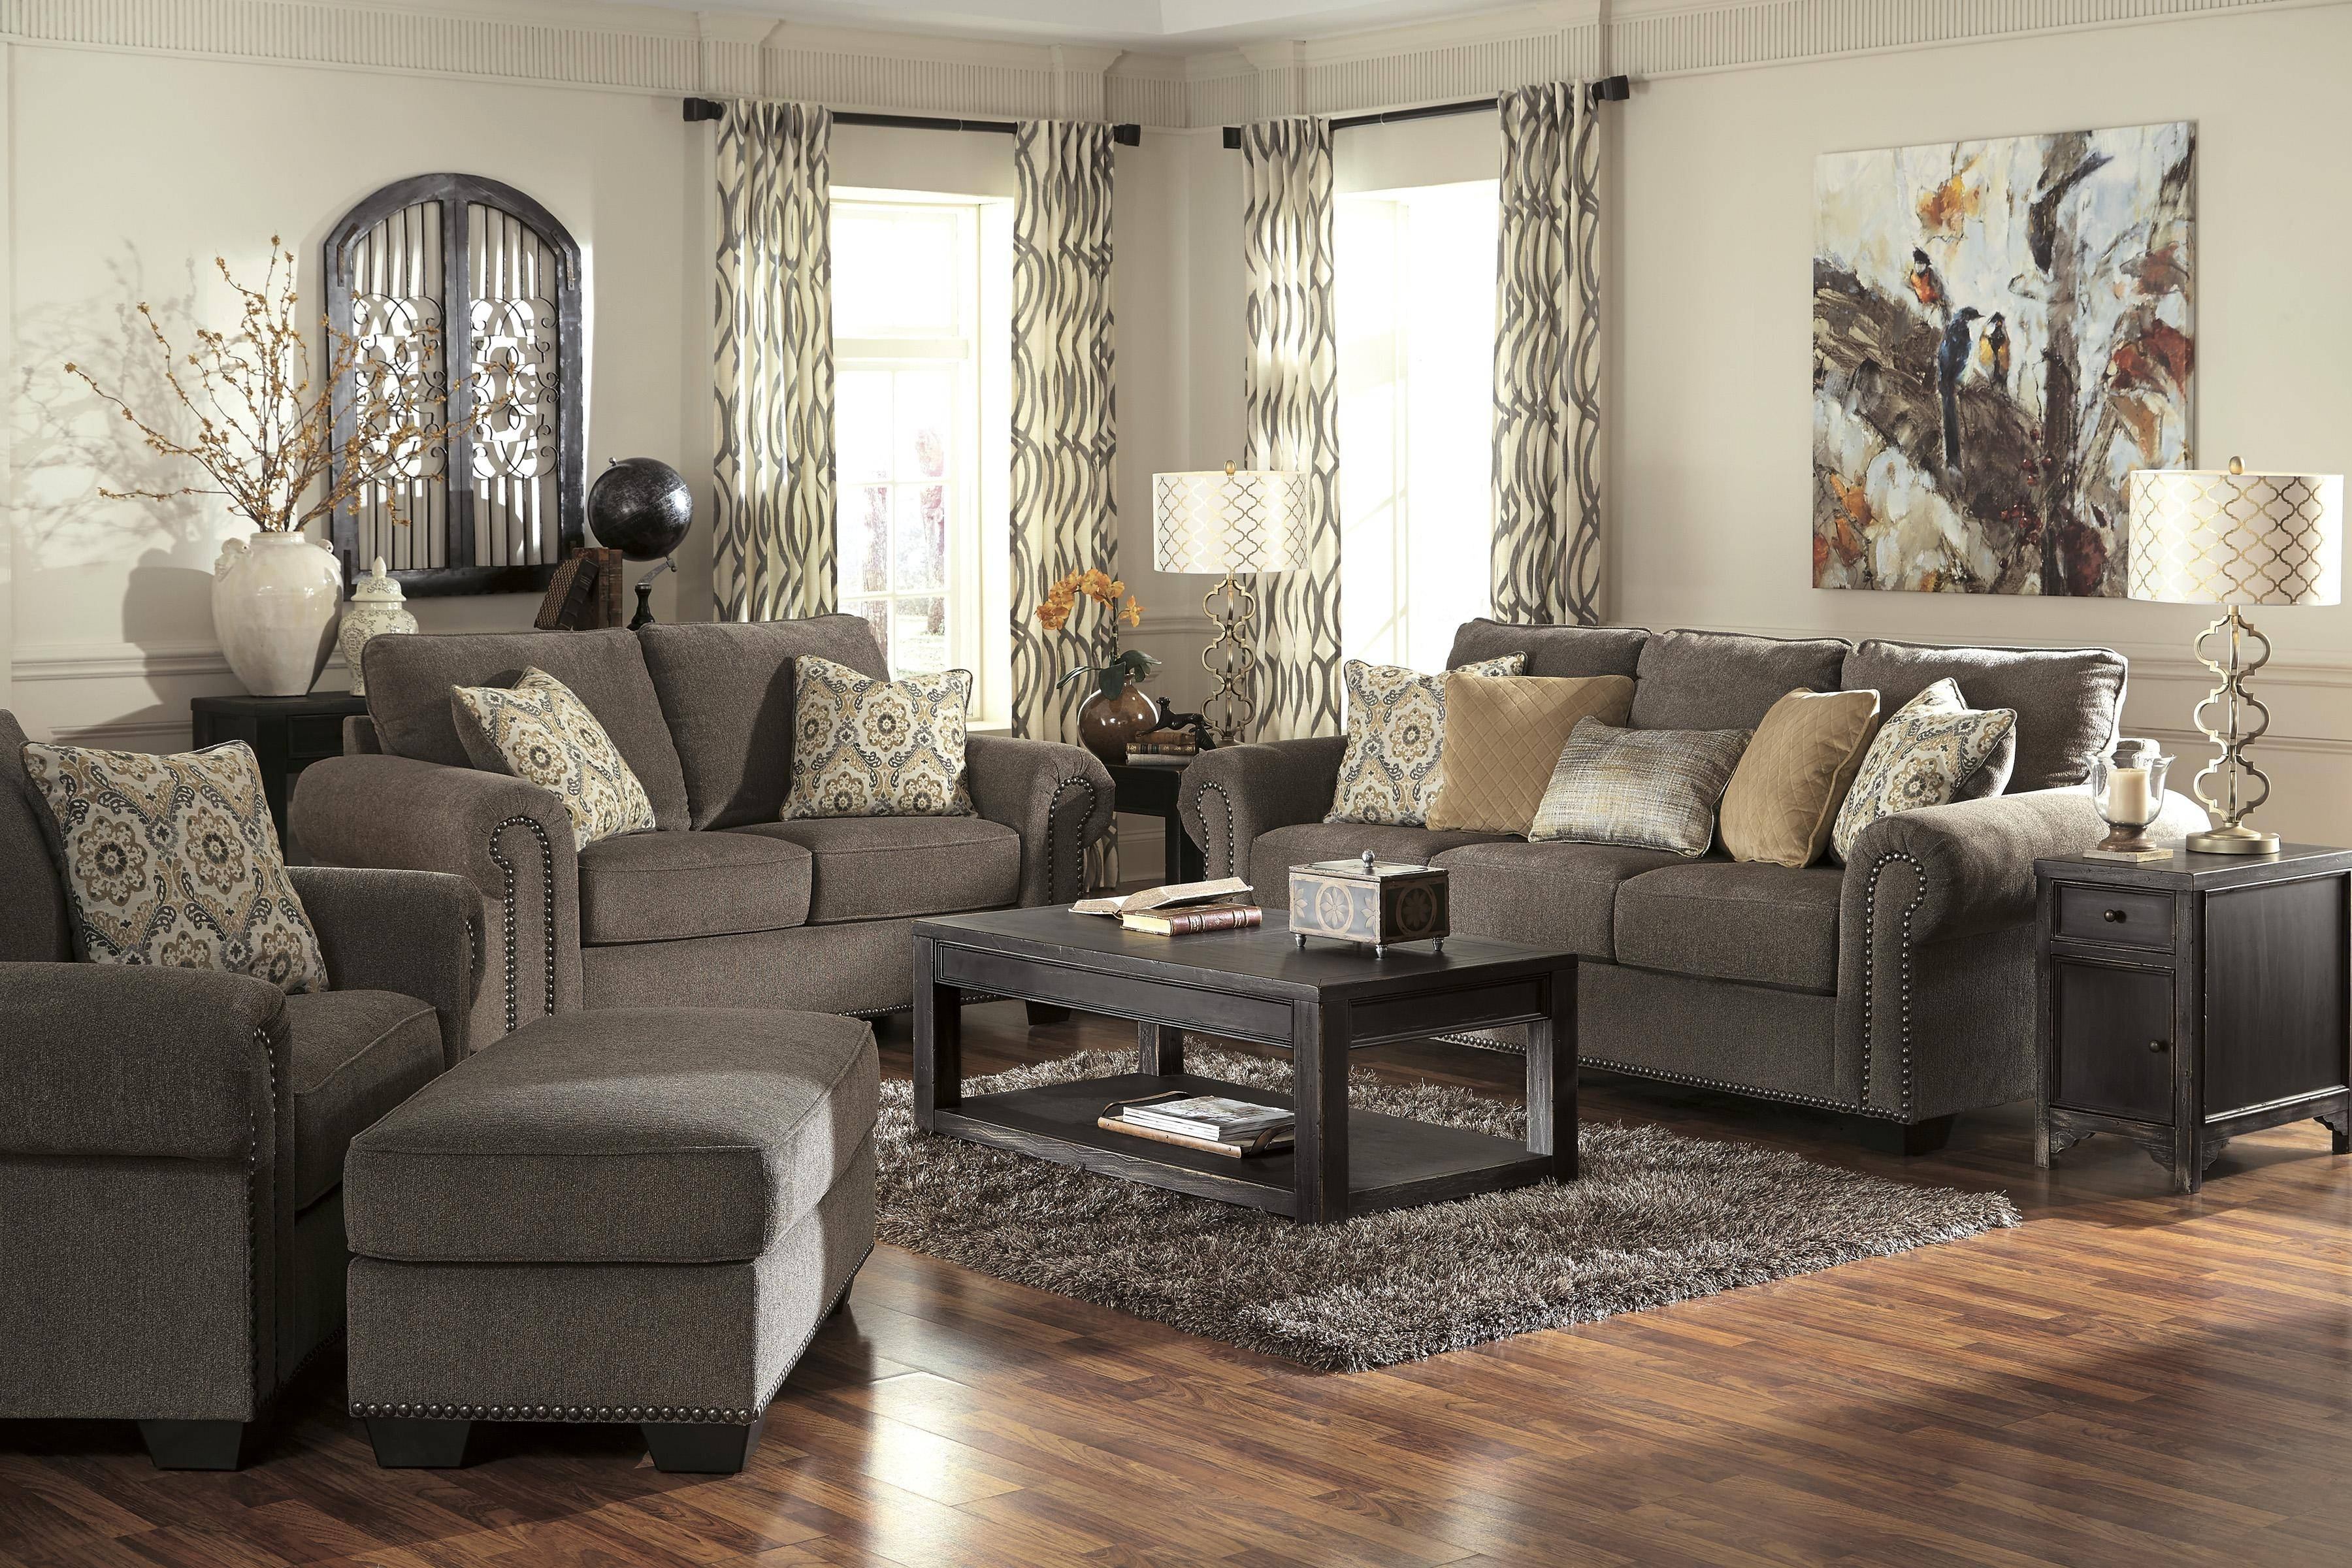 Ashley Emelen 4 Piece Living Room Set In Alloy 45600 38 35 with 15 Some of the Coolest Initiatives of How to Improve 14 Piece Living Room Set